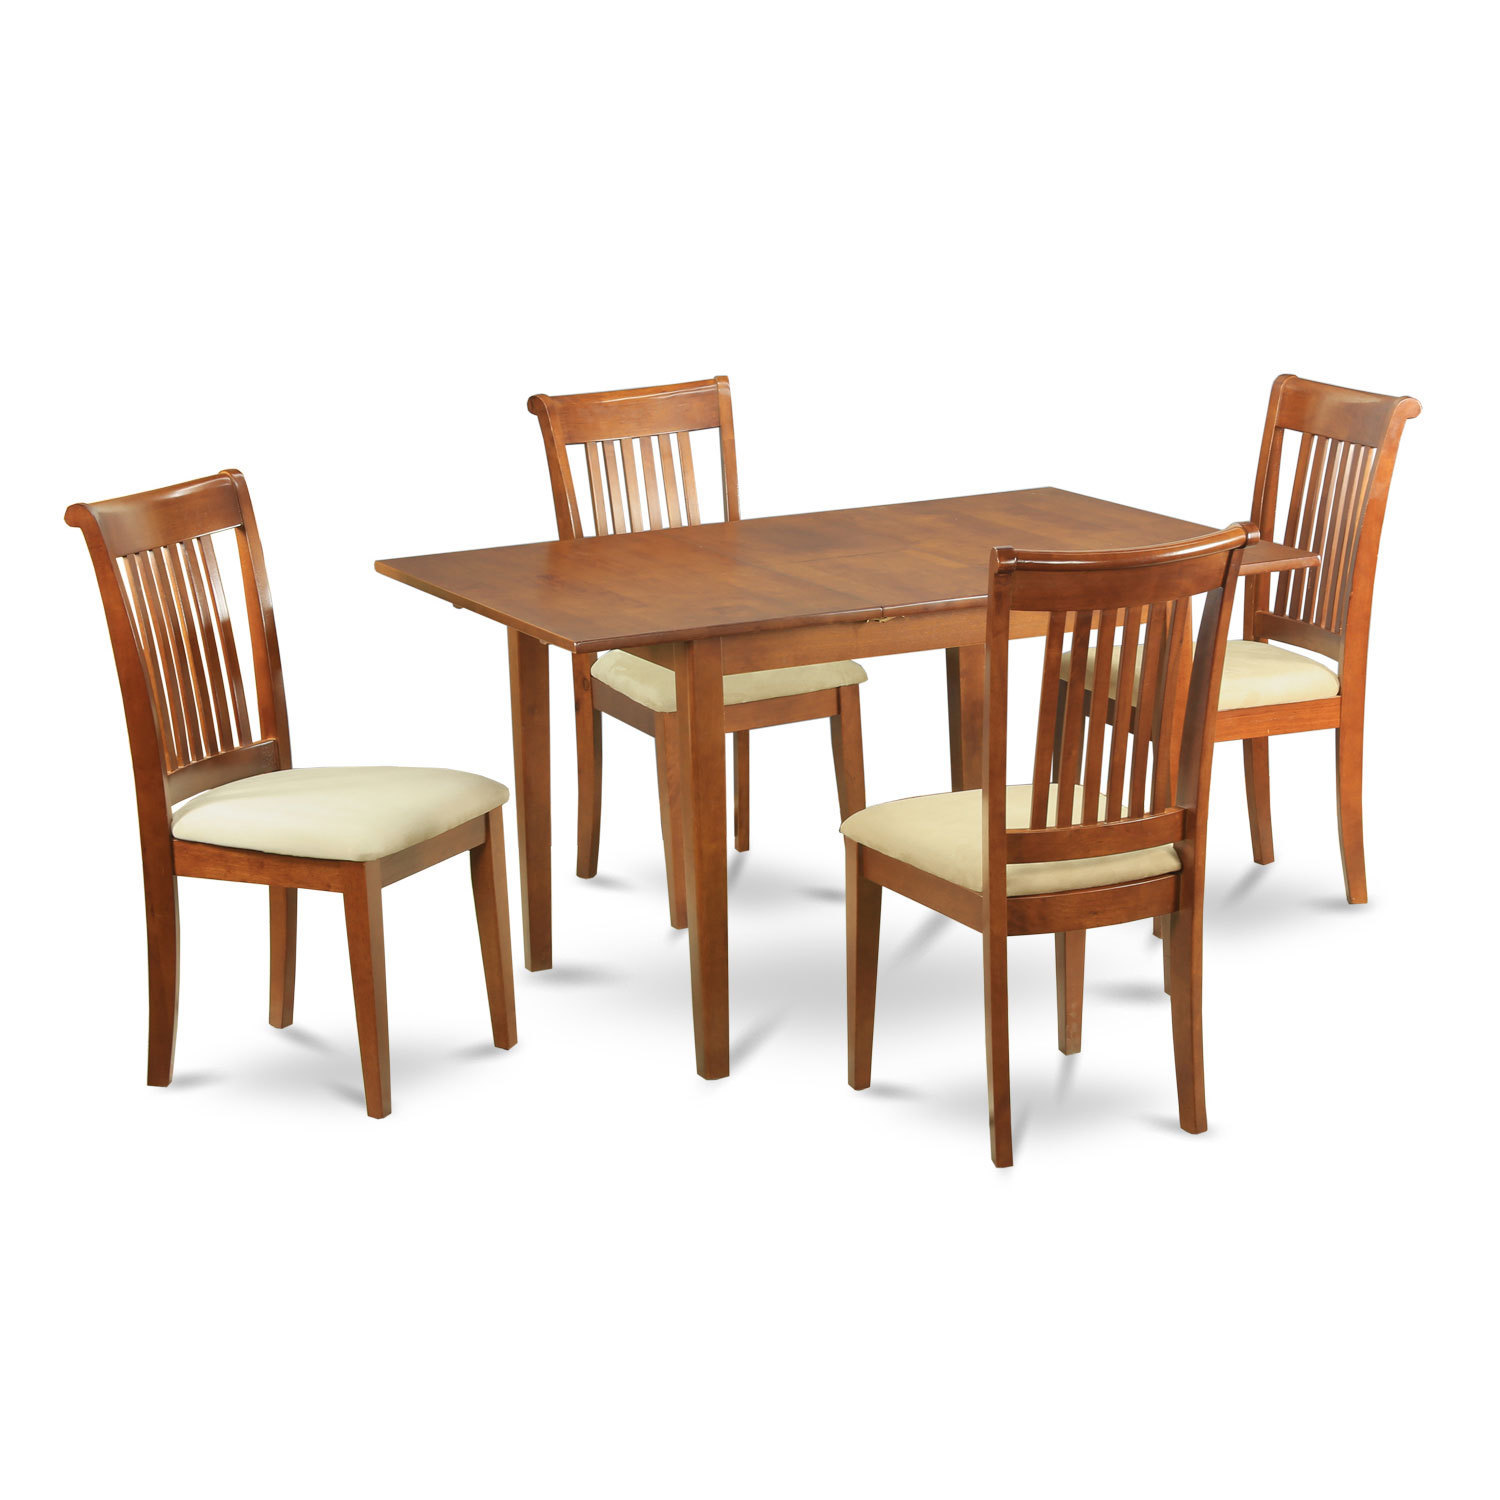 Small dinette set design homesfeed - Small space dinette sets set ...